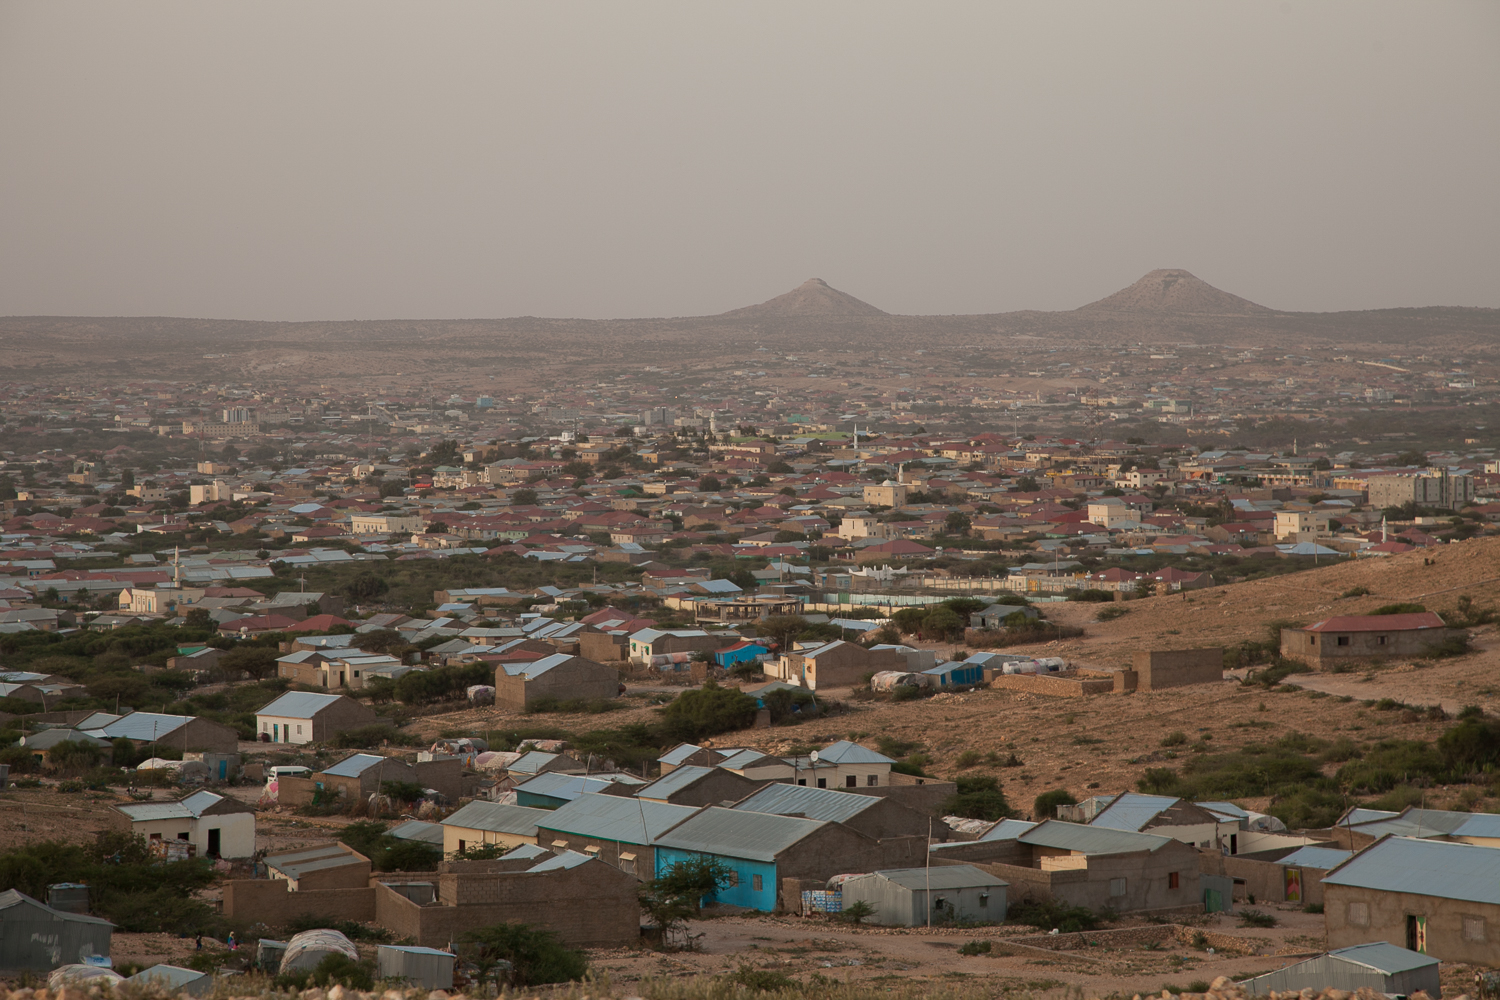 View across Hargeisa, the capital of the breakaway northern region of Somalia. [Zoe Flood/Al Jazeera]